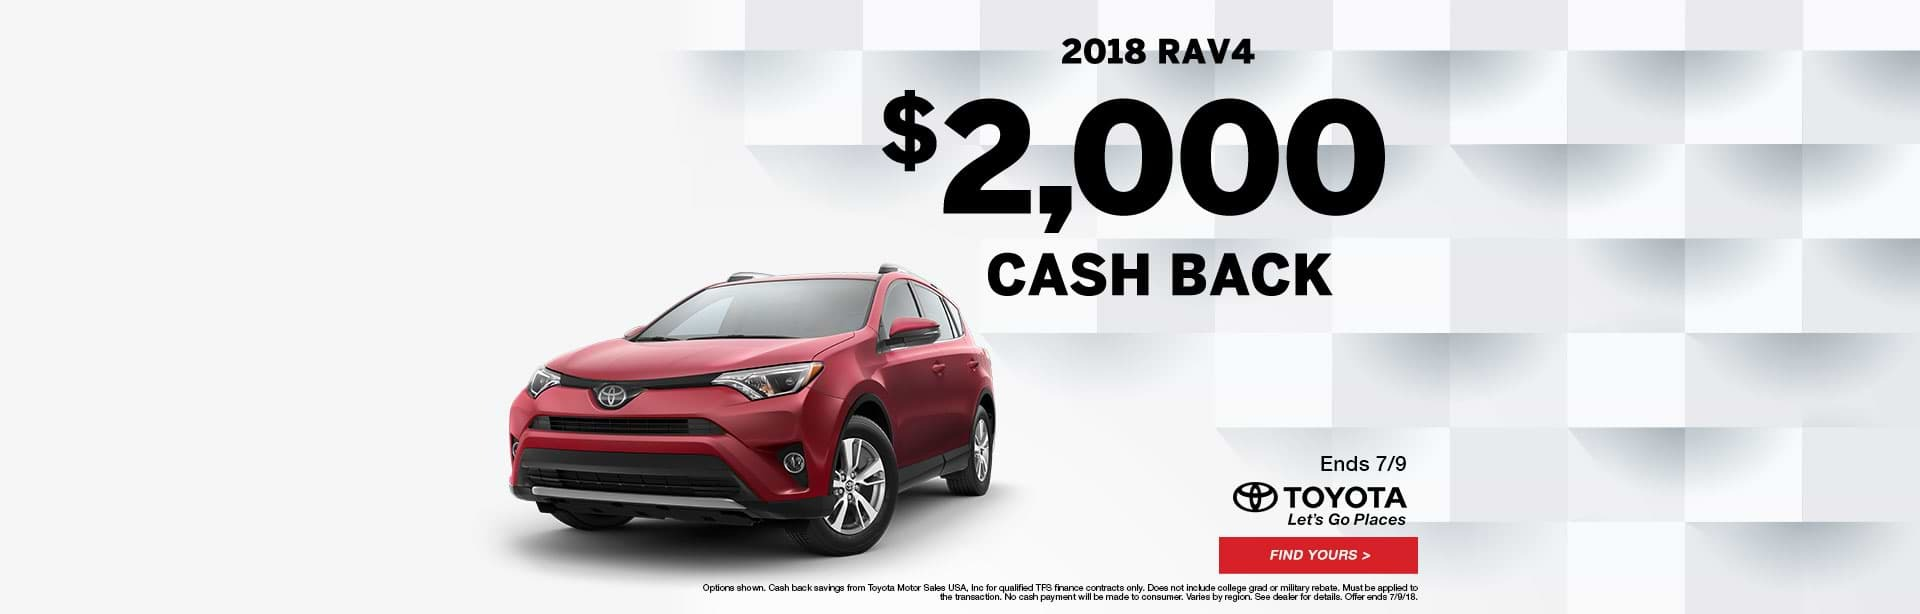 2018 RAV4 at Fallon Toyota